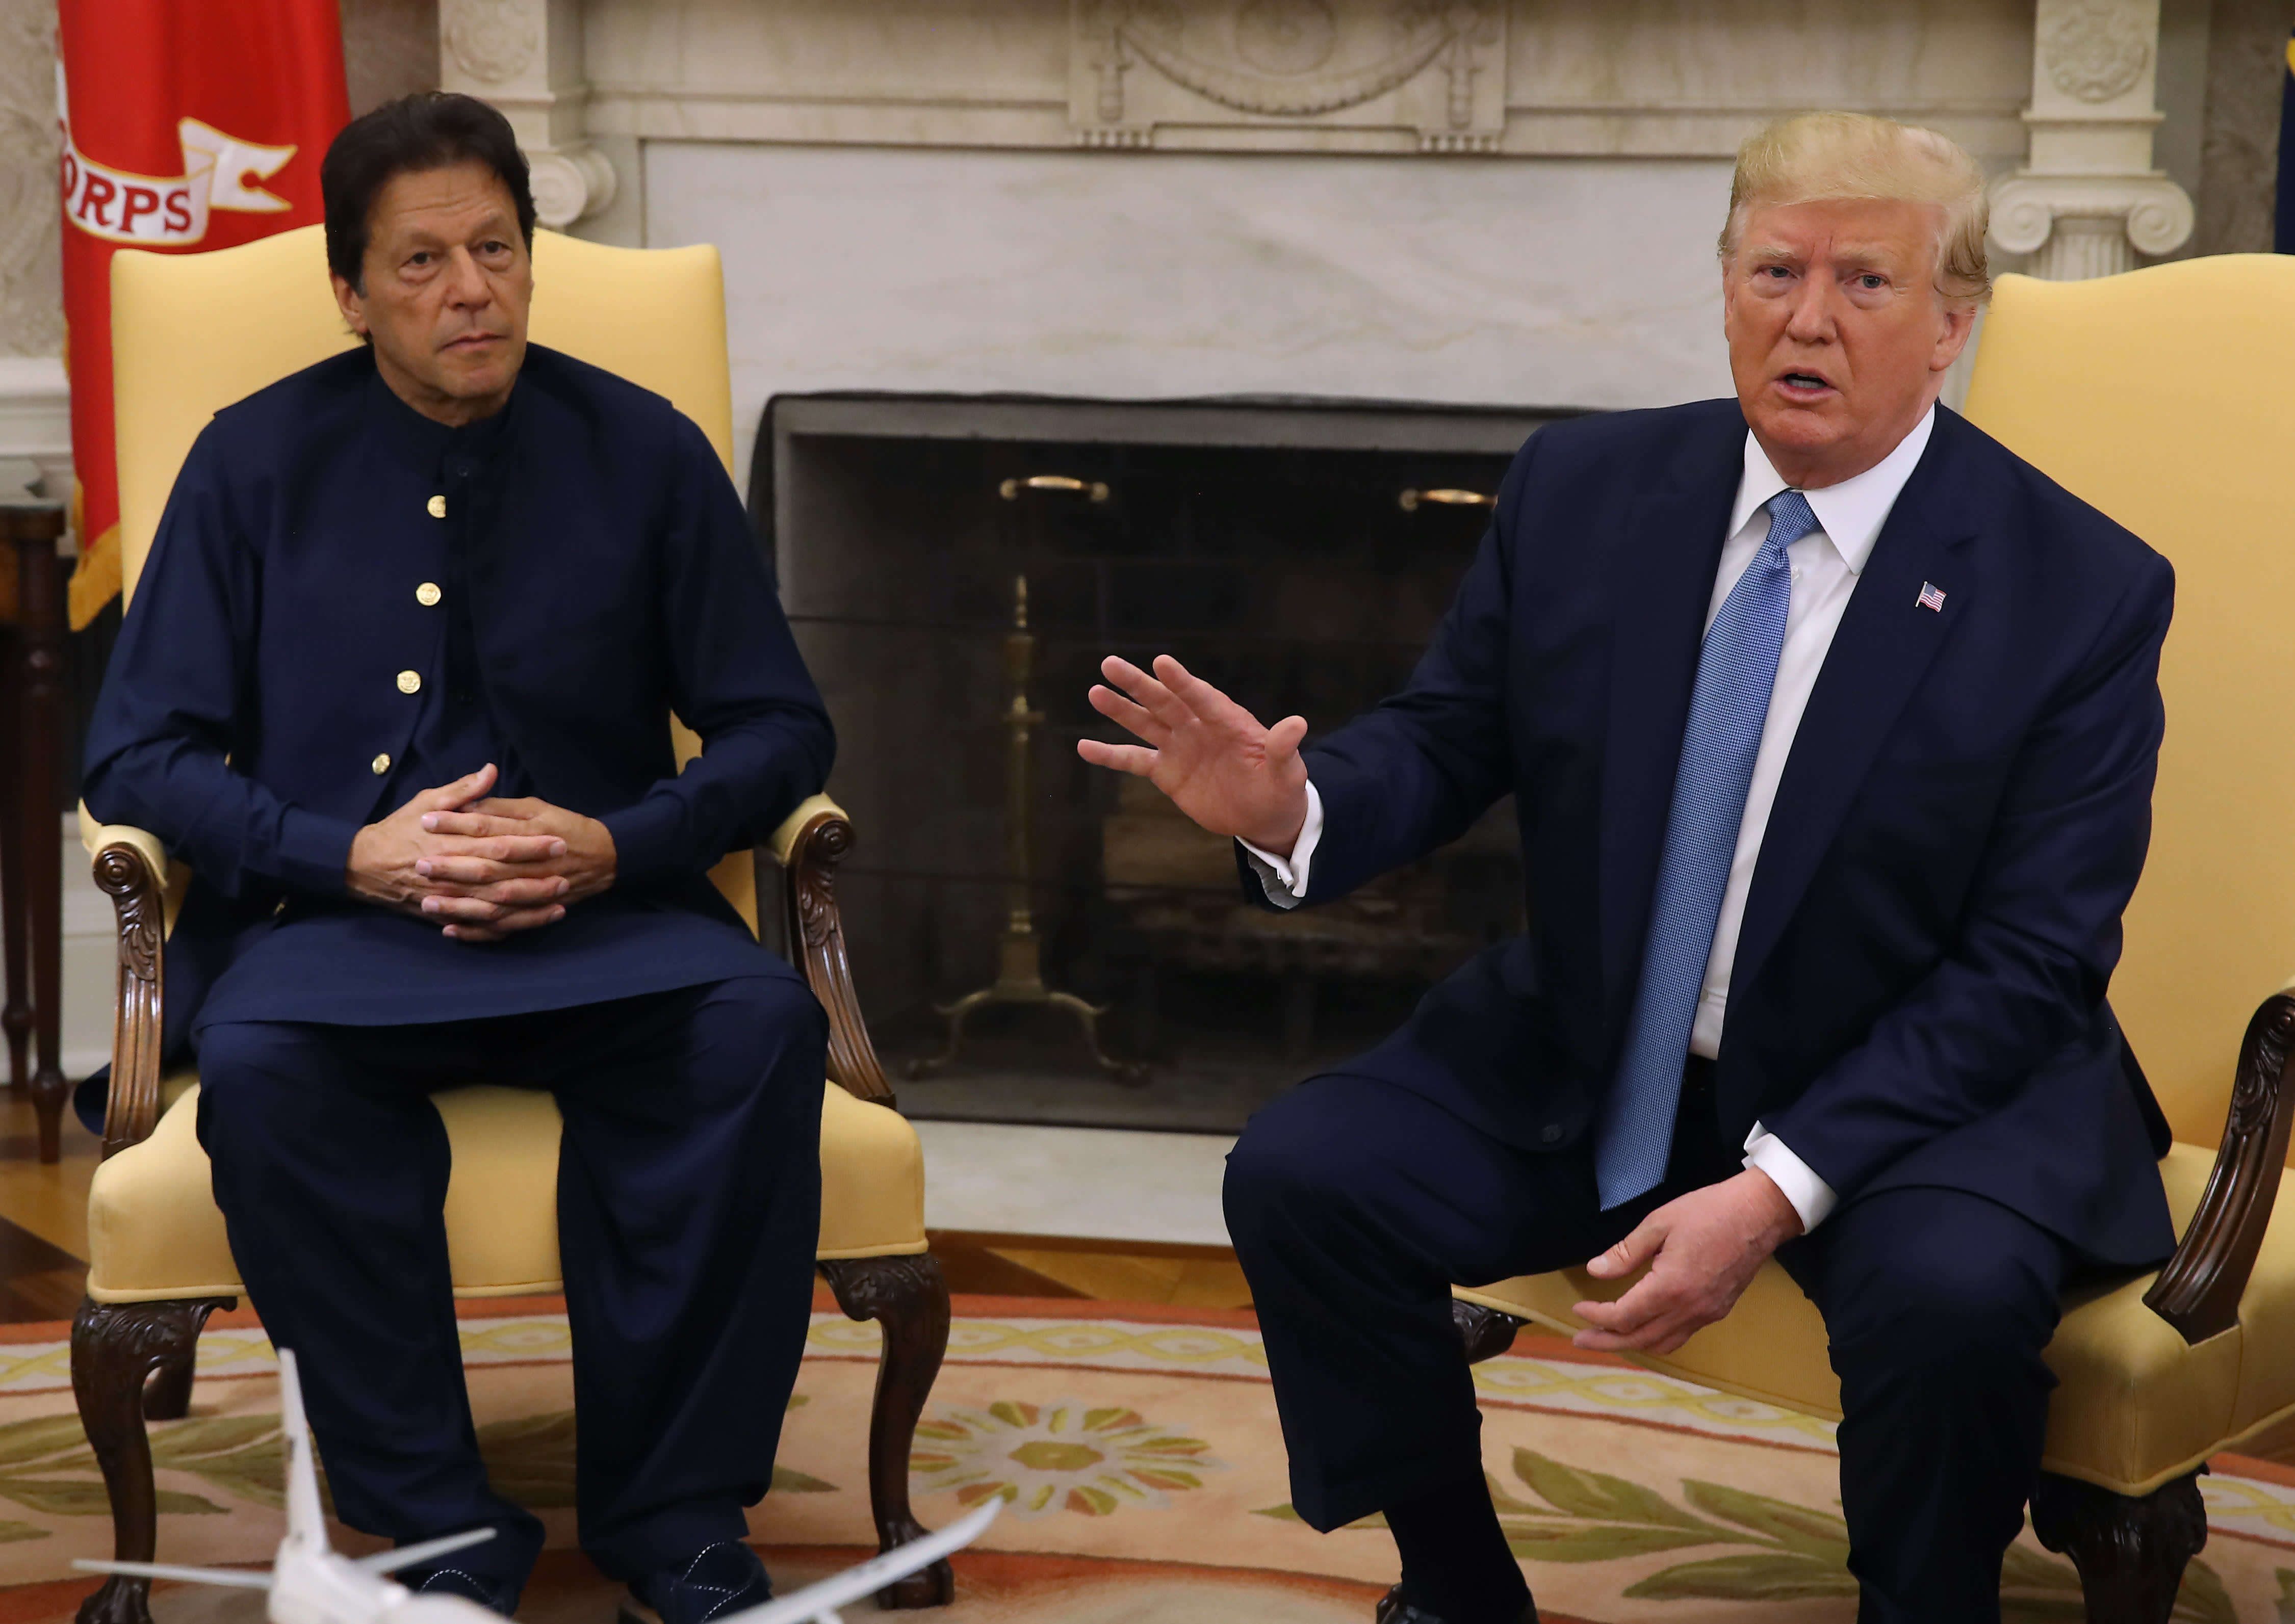 Pakistan's prime minister visits Trump, but that's not likely to help his country's struggling economy